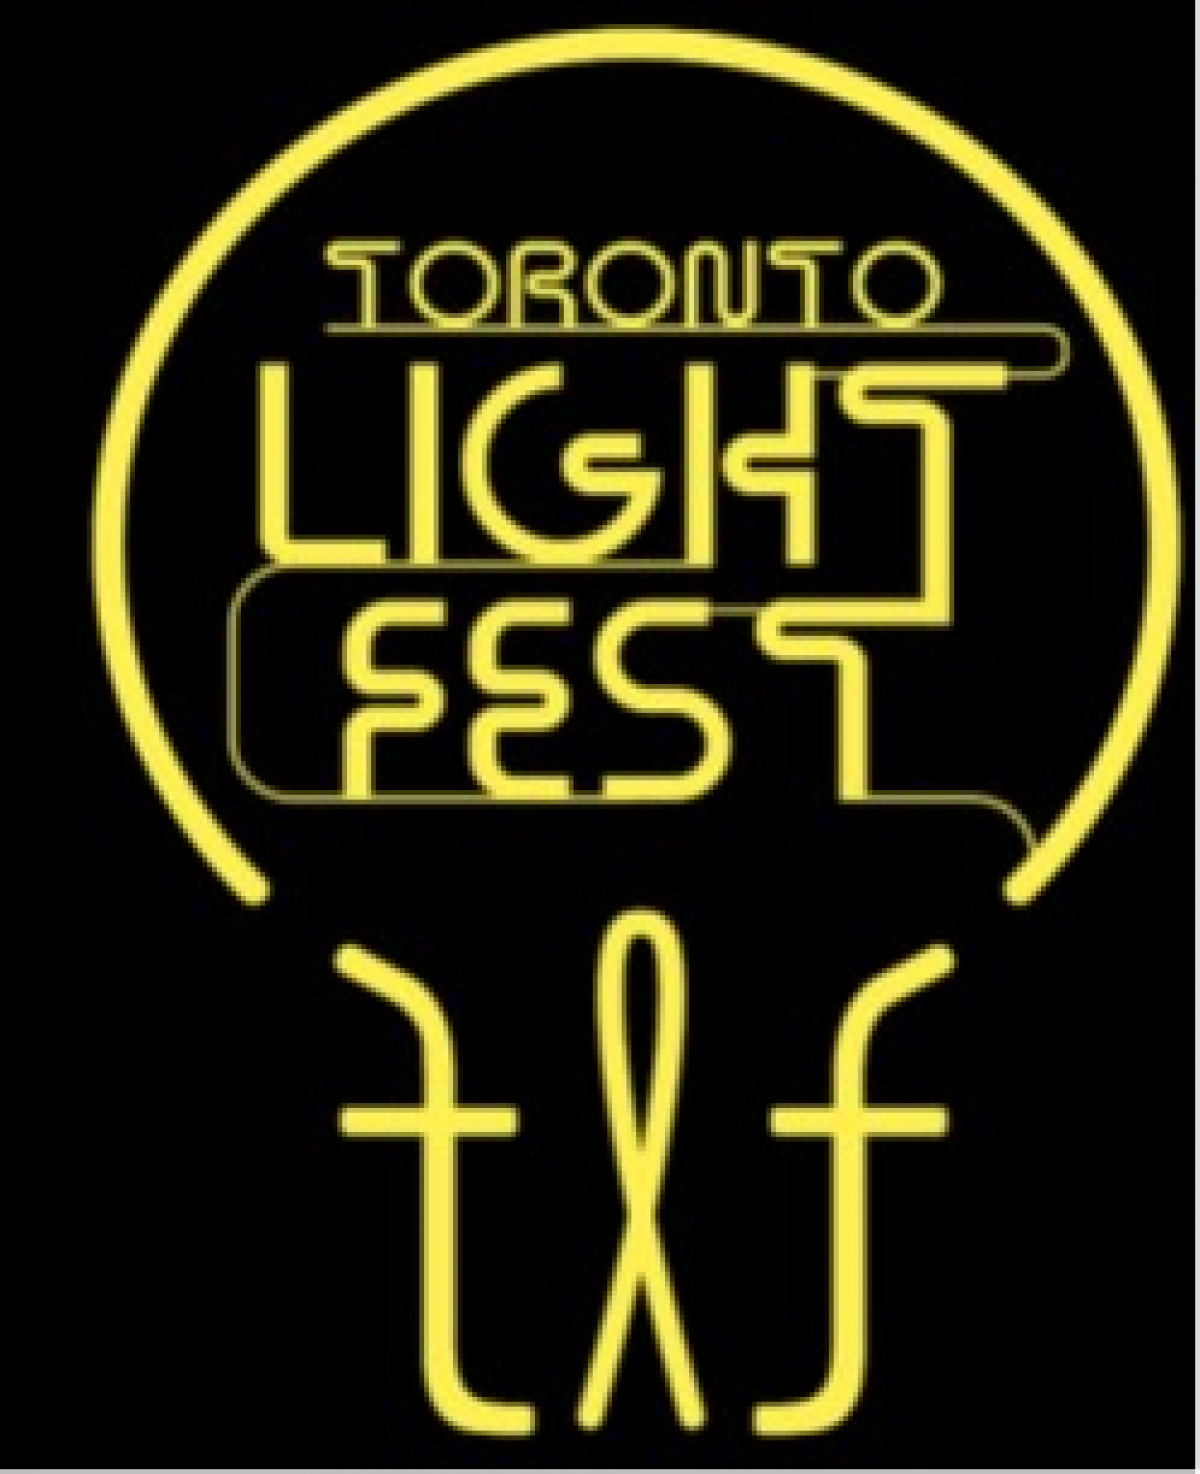 Toronto Light Festival January 18 to March 3, 2019